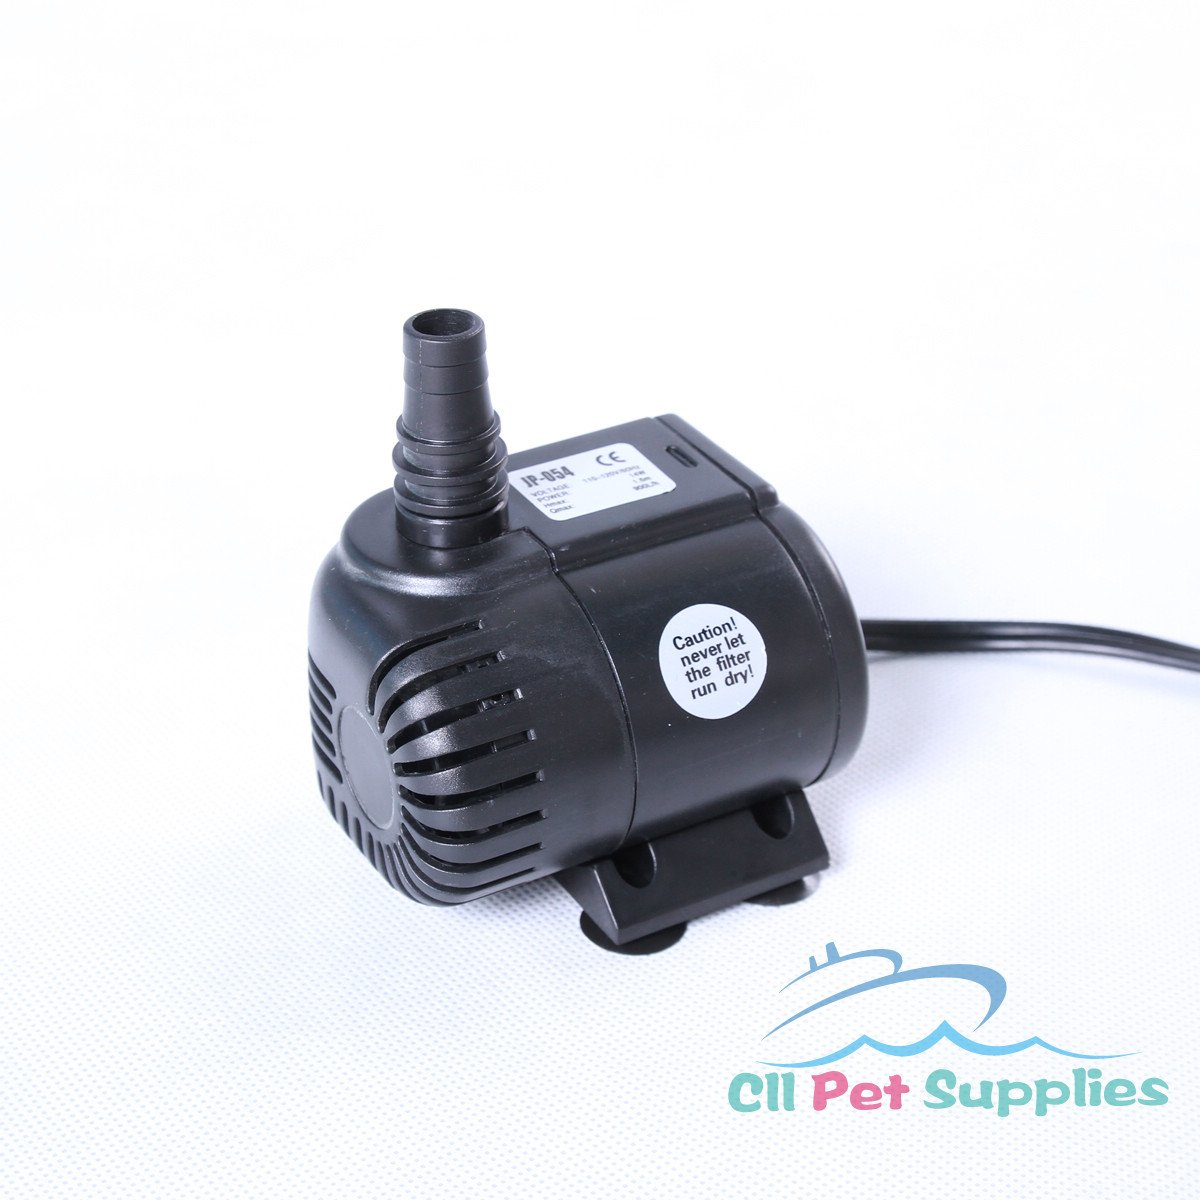 Sunsun Jp 054 240 Gph Submersible Pump Aquarium Fish 1999 Toyota Fuel Filter Tank Powerhead Fountain Water Hydroponic Usa By Sun Microsystems Pet Supplies